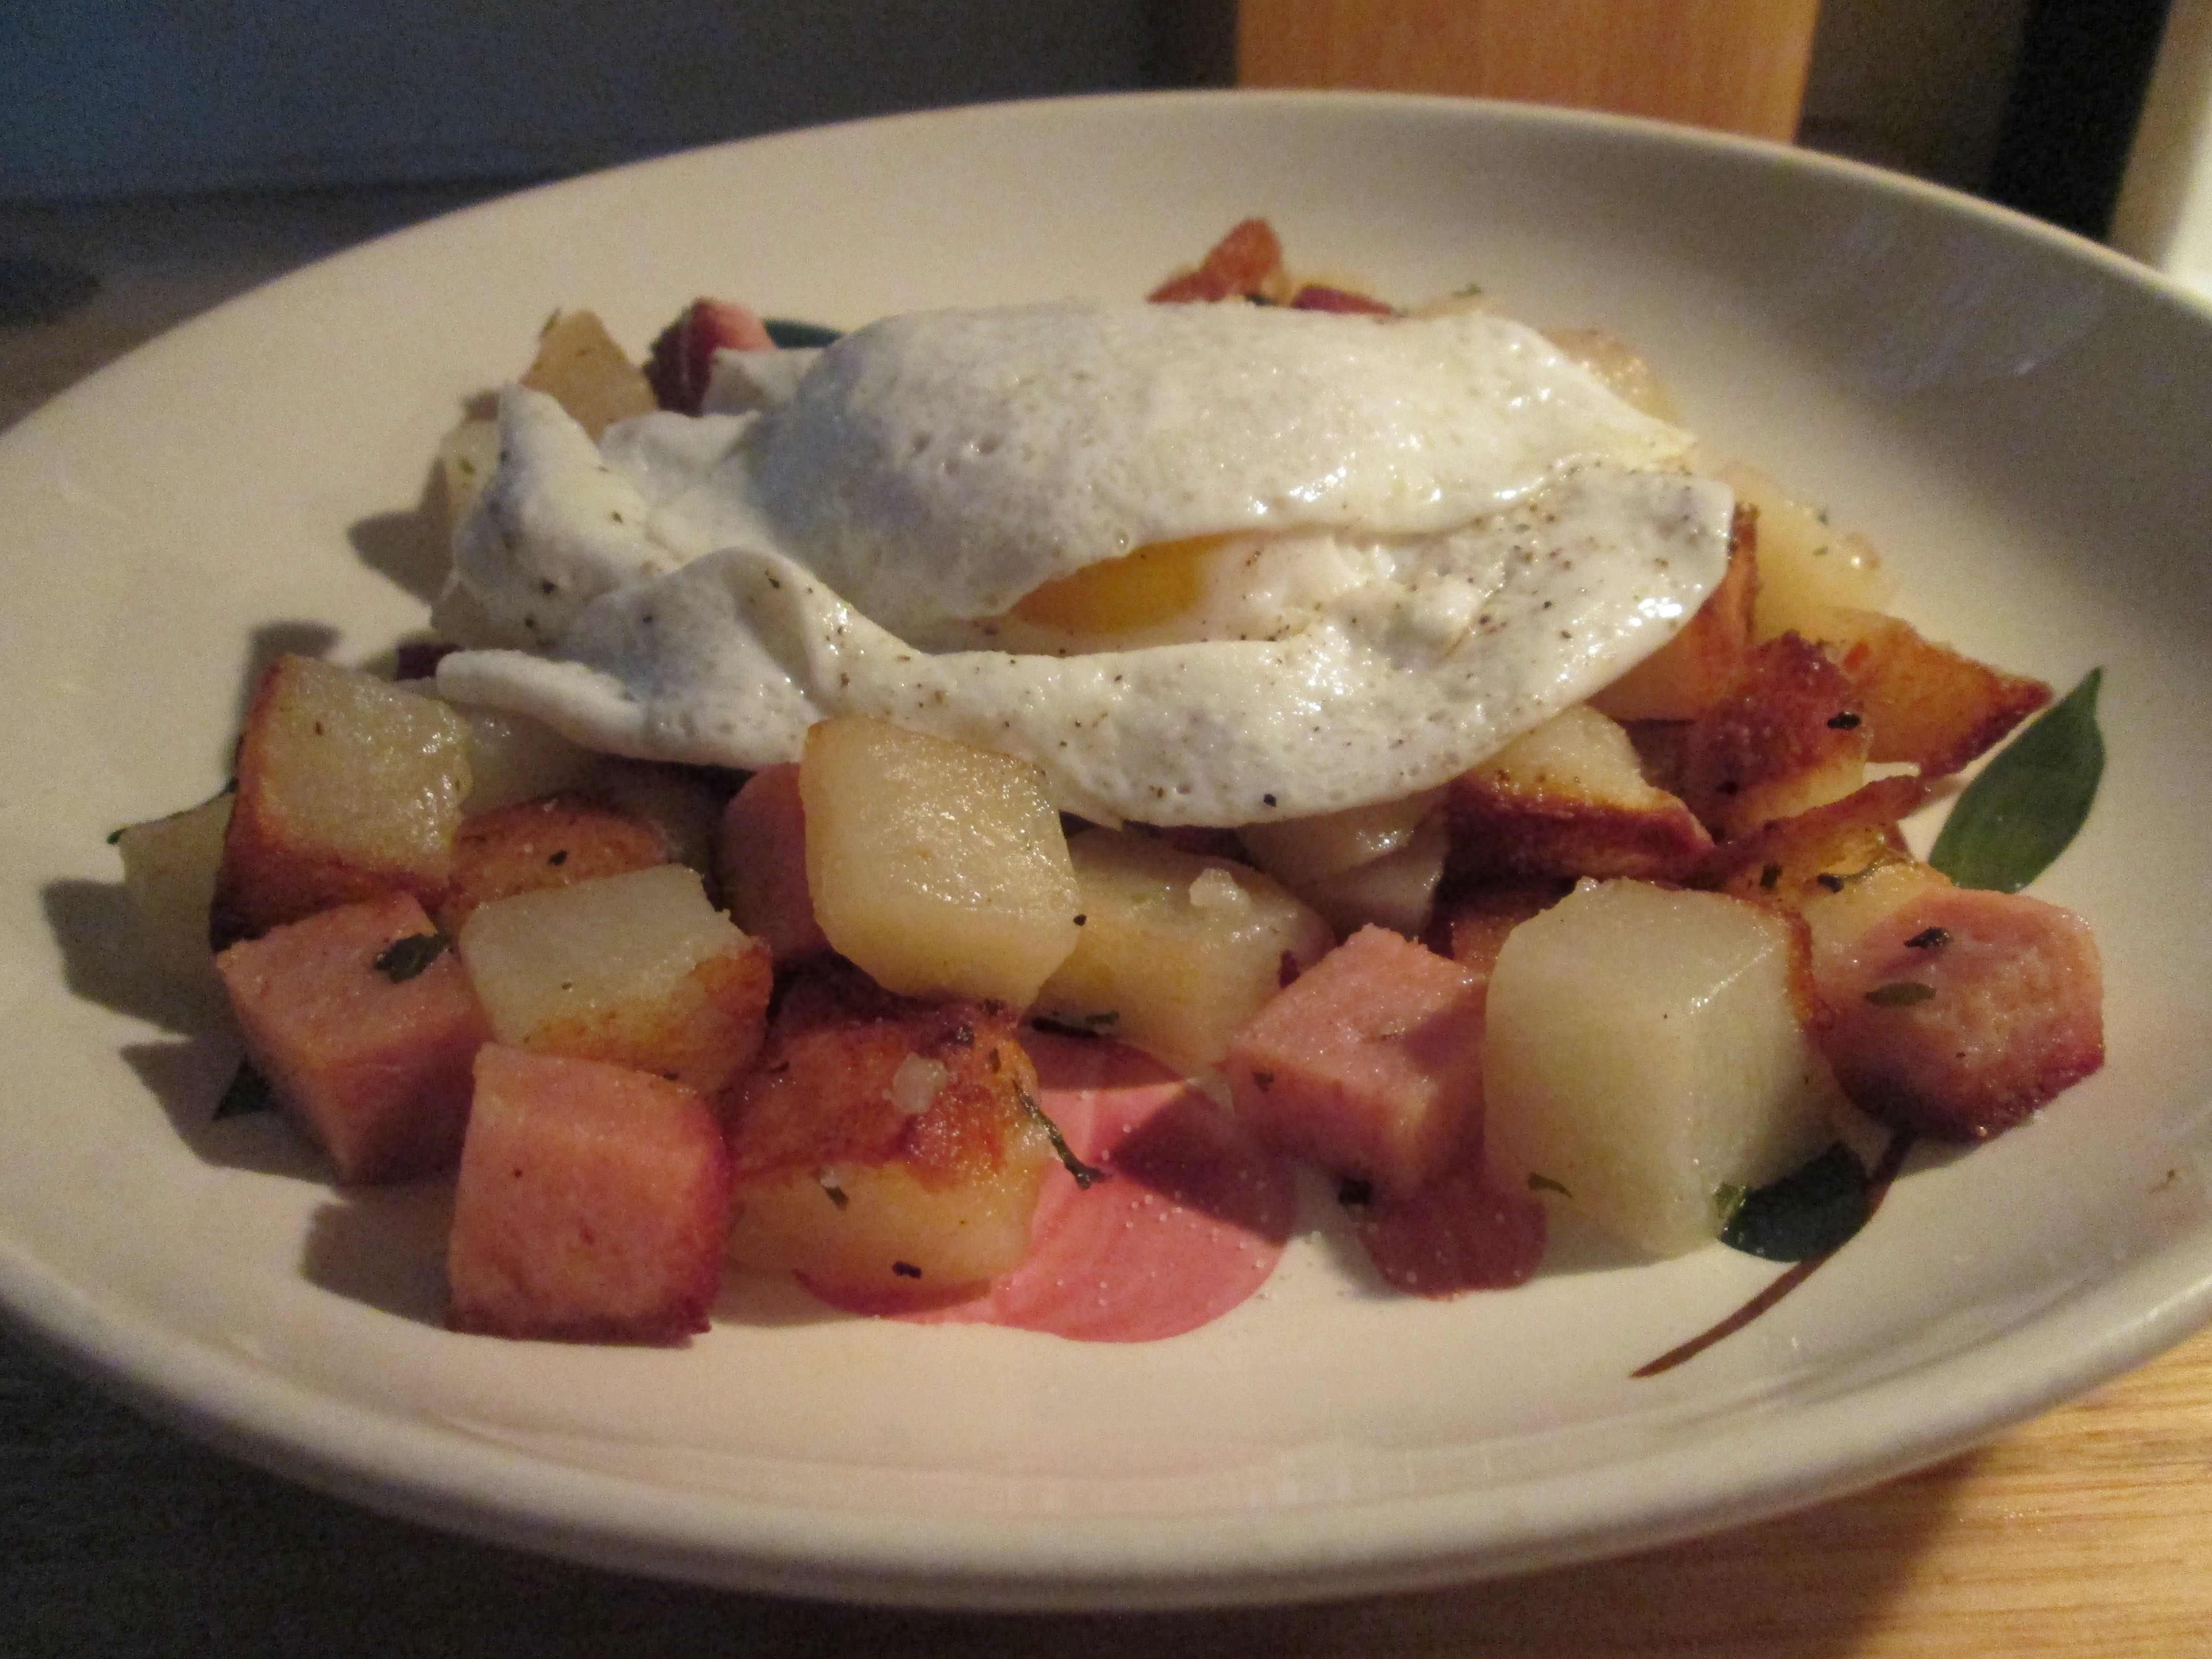 I prepared a Turkey Spam and Diced Potato Hash topped with a Fried Egg. I used a can of Turkey Spam, that diced up. Then for the Potatoes I used a bag of Simply Potatoes Steakhouse Seasoned Diced Potatoes.